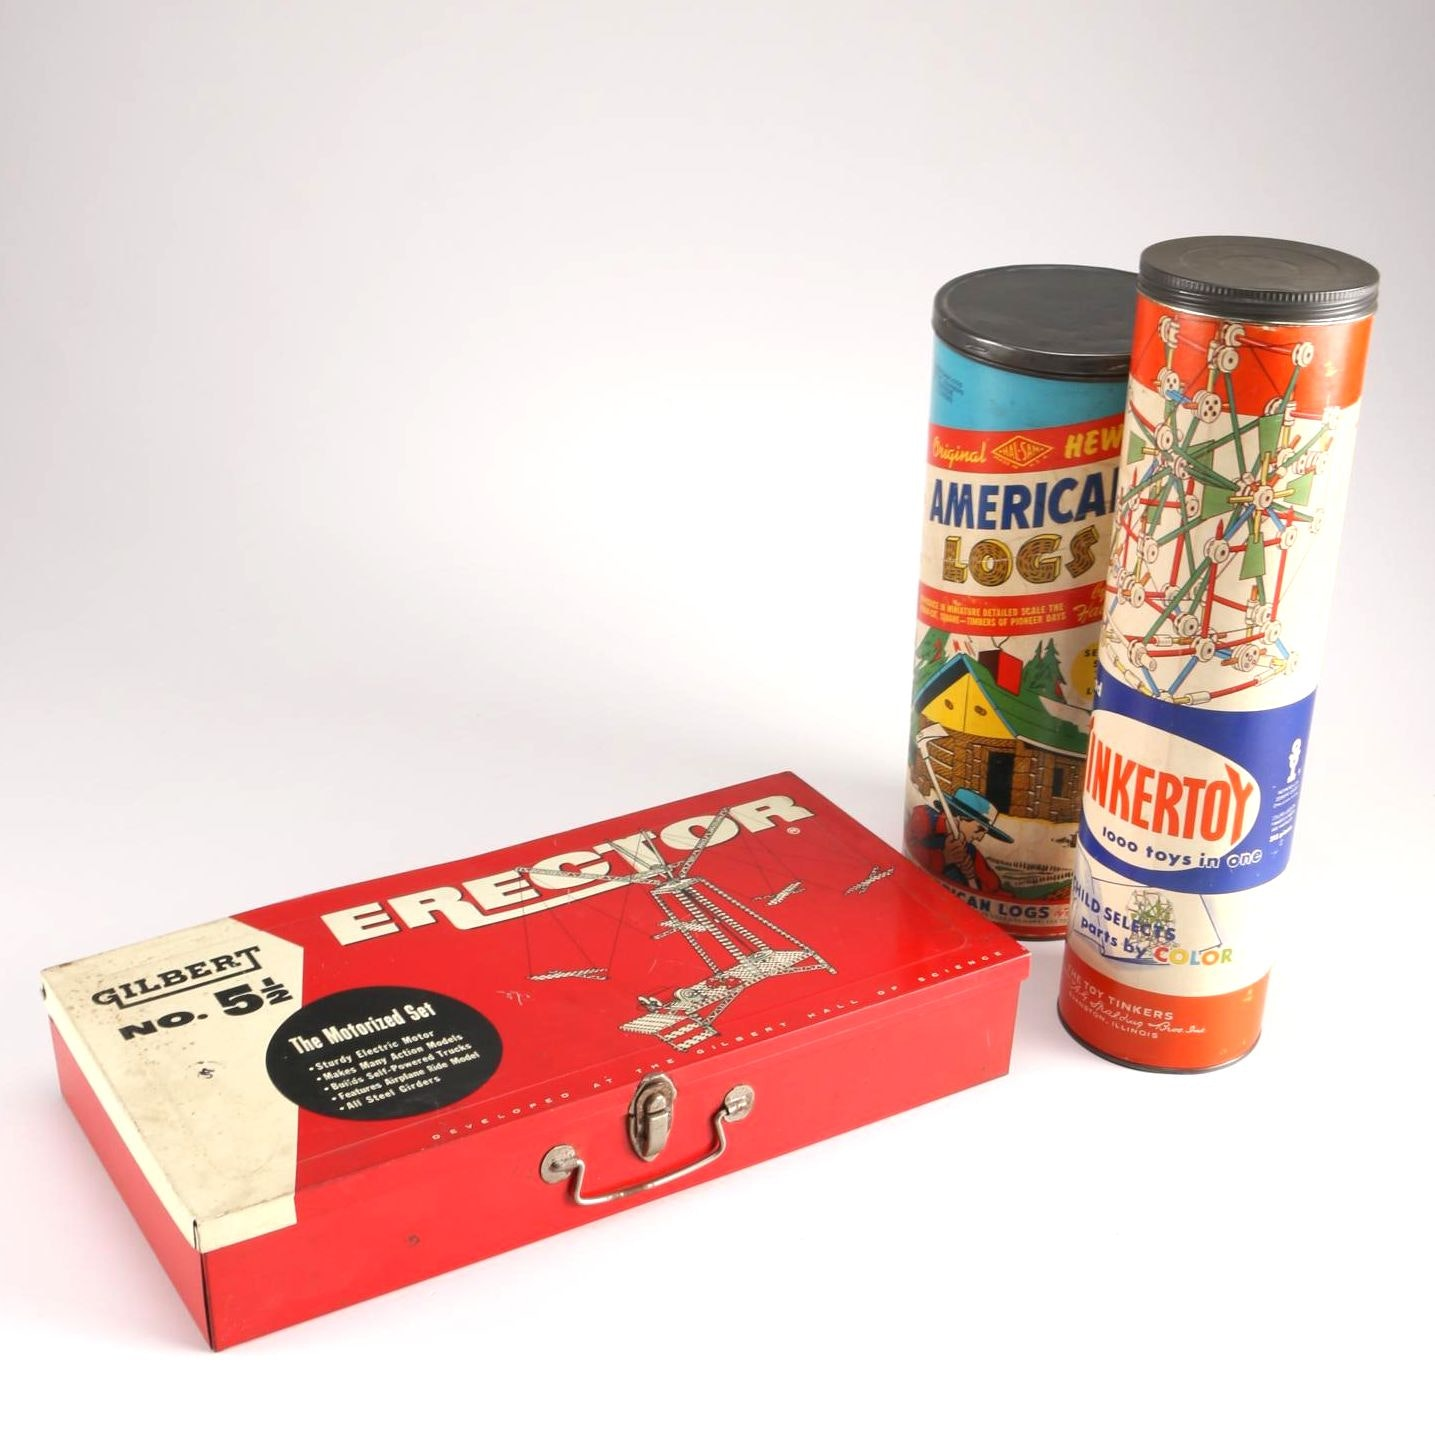 Tinkertoy and American Log Sets with Metal Case